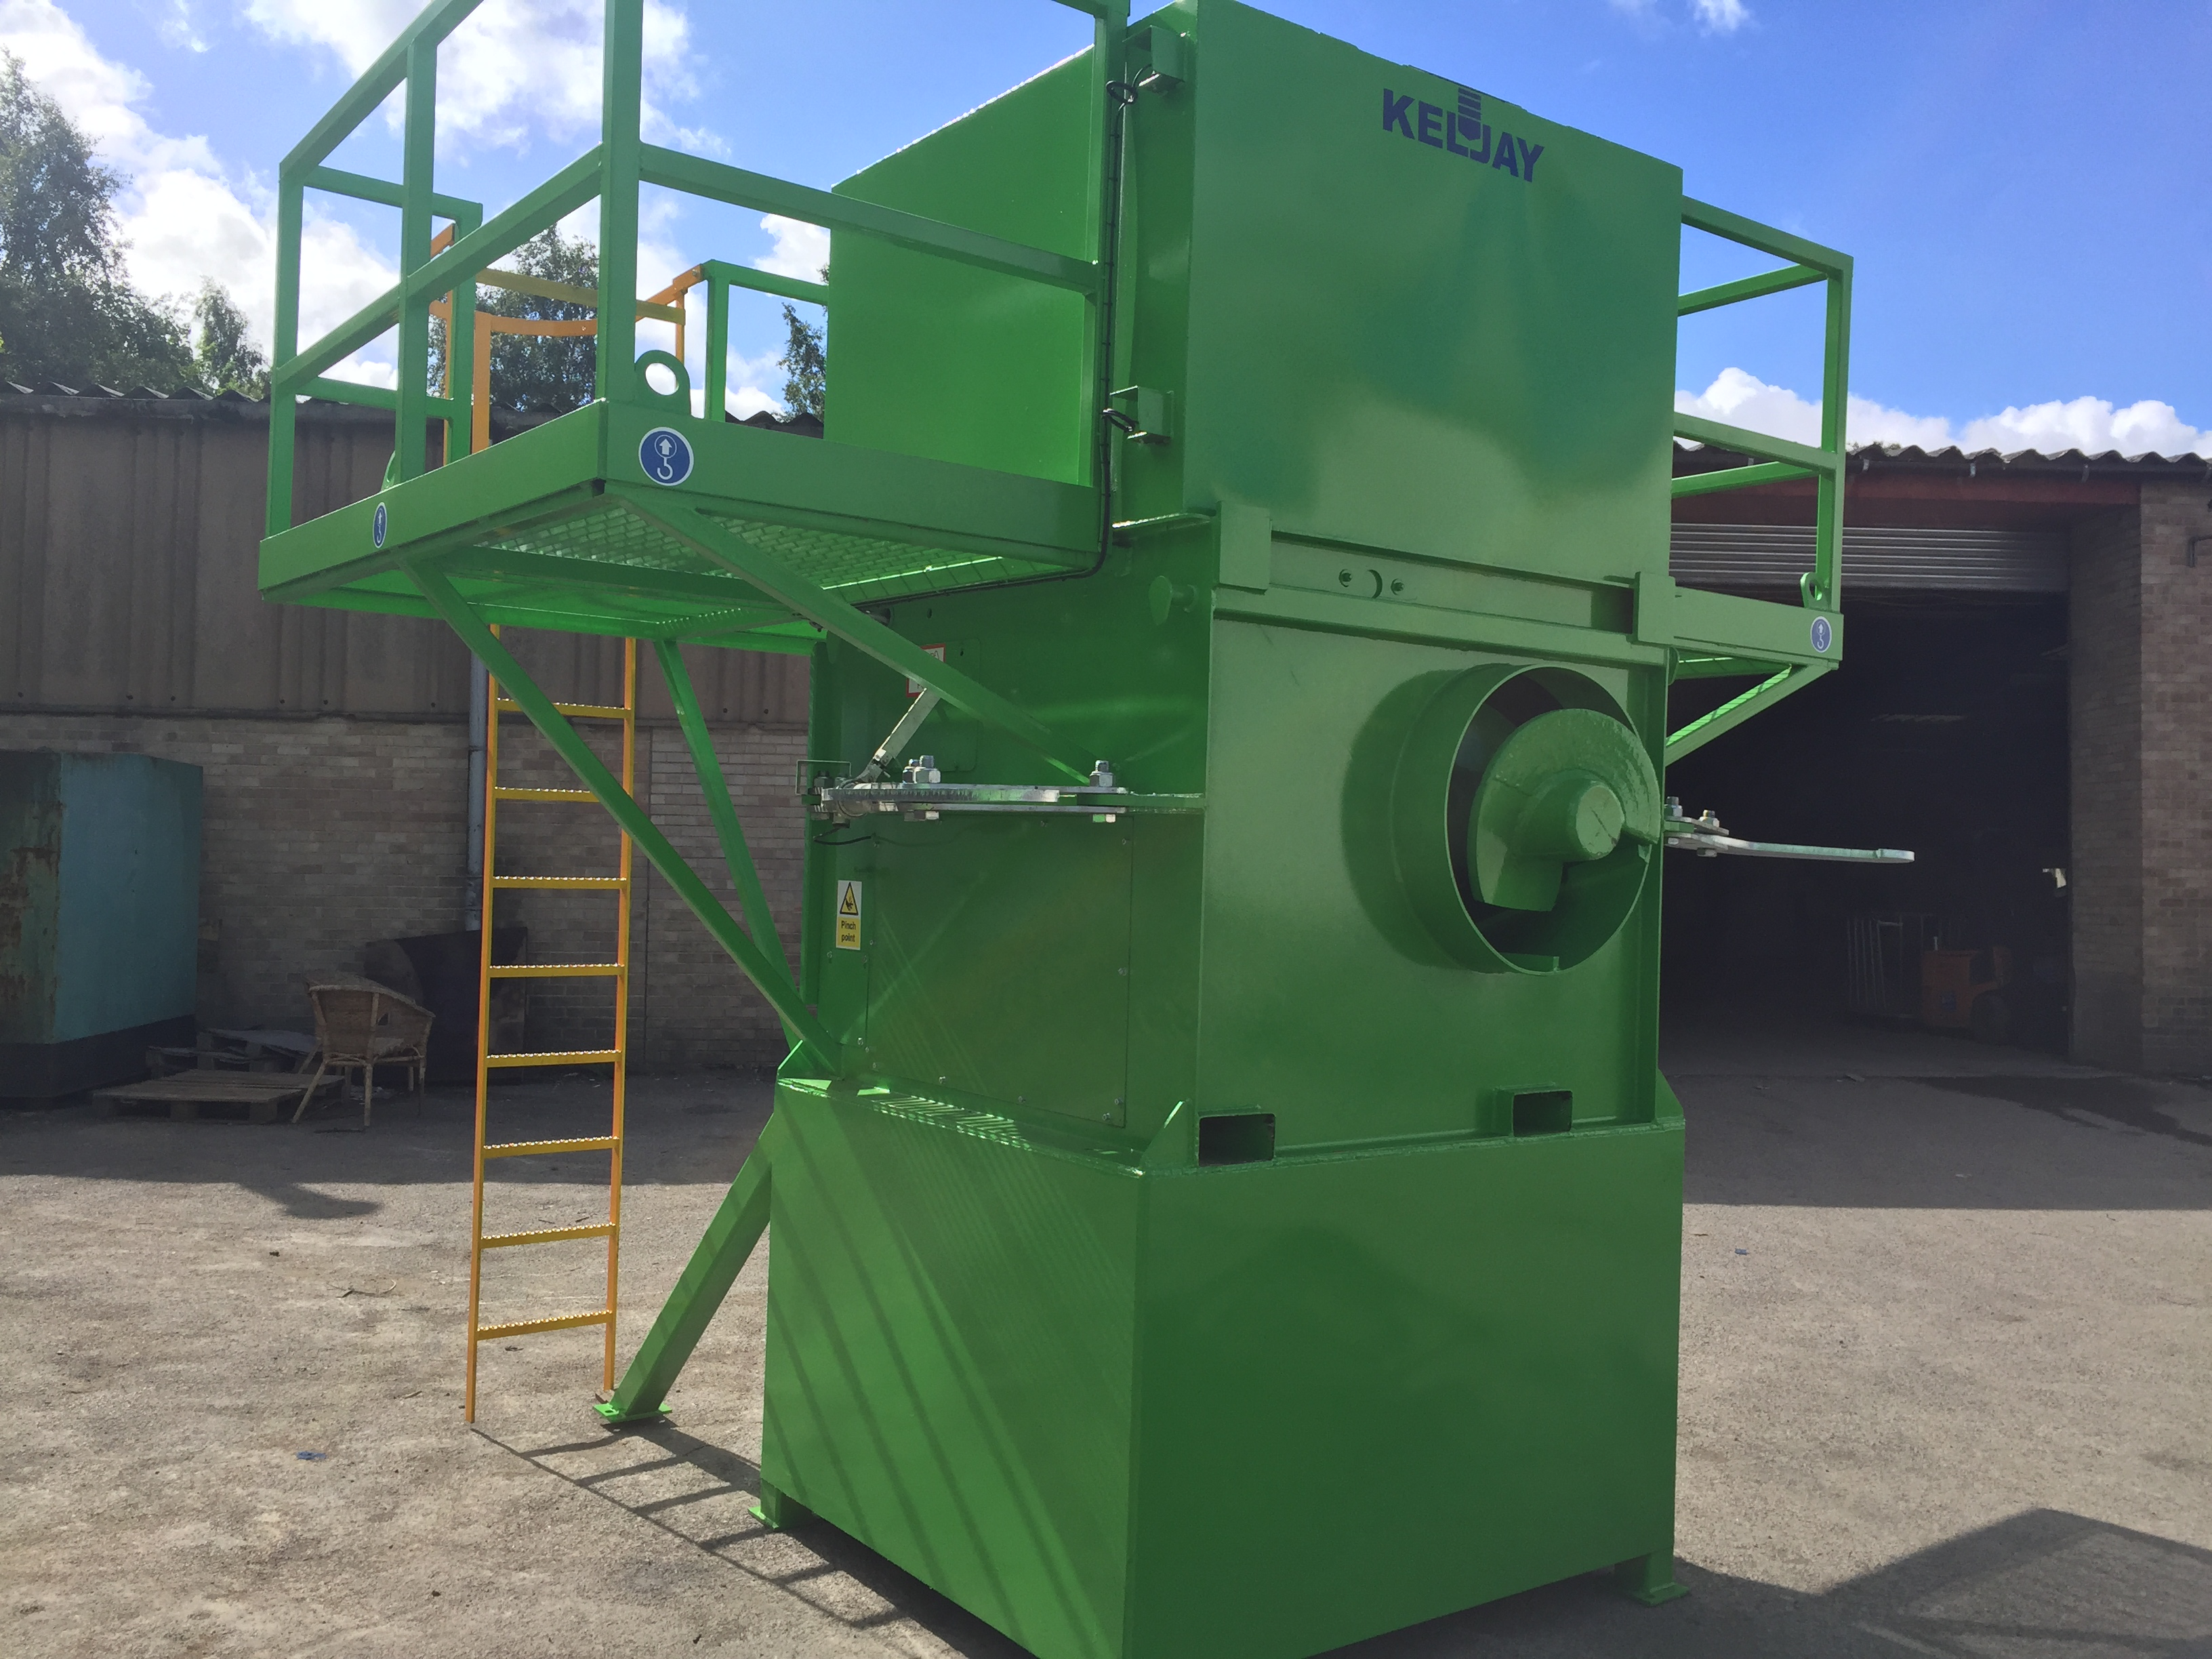 Keljay's Brand New Bio Screw Compactor